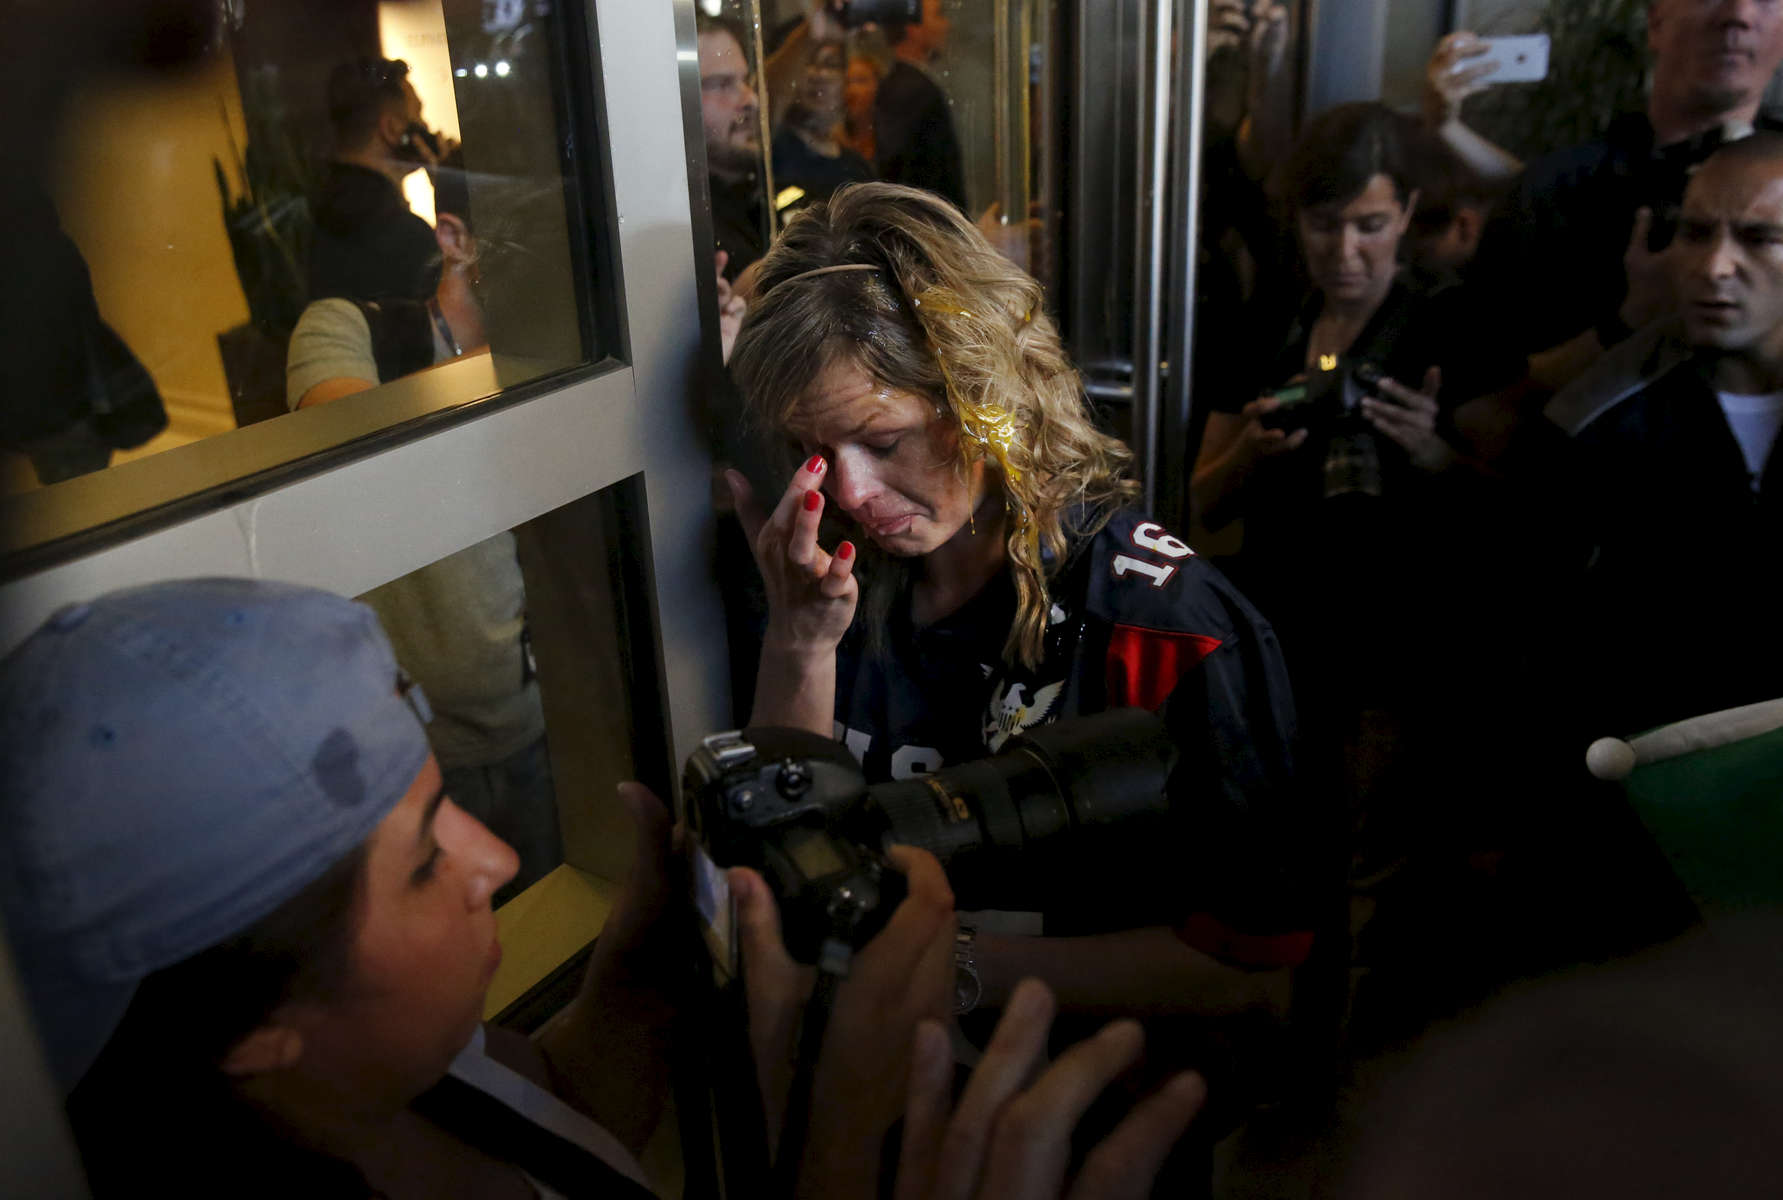 A Donald Trump supporter tries to clear her eyes after being cornered by an anti-Trump crowd and getting hit by multiple eggs near the convention center where presidential candidate Donald Trump held a campaign rally June 2, 2016 in downtown San Jose, Calif.